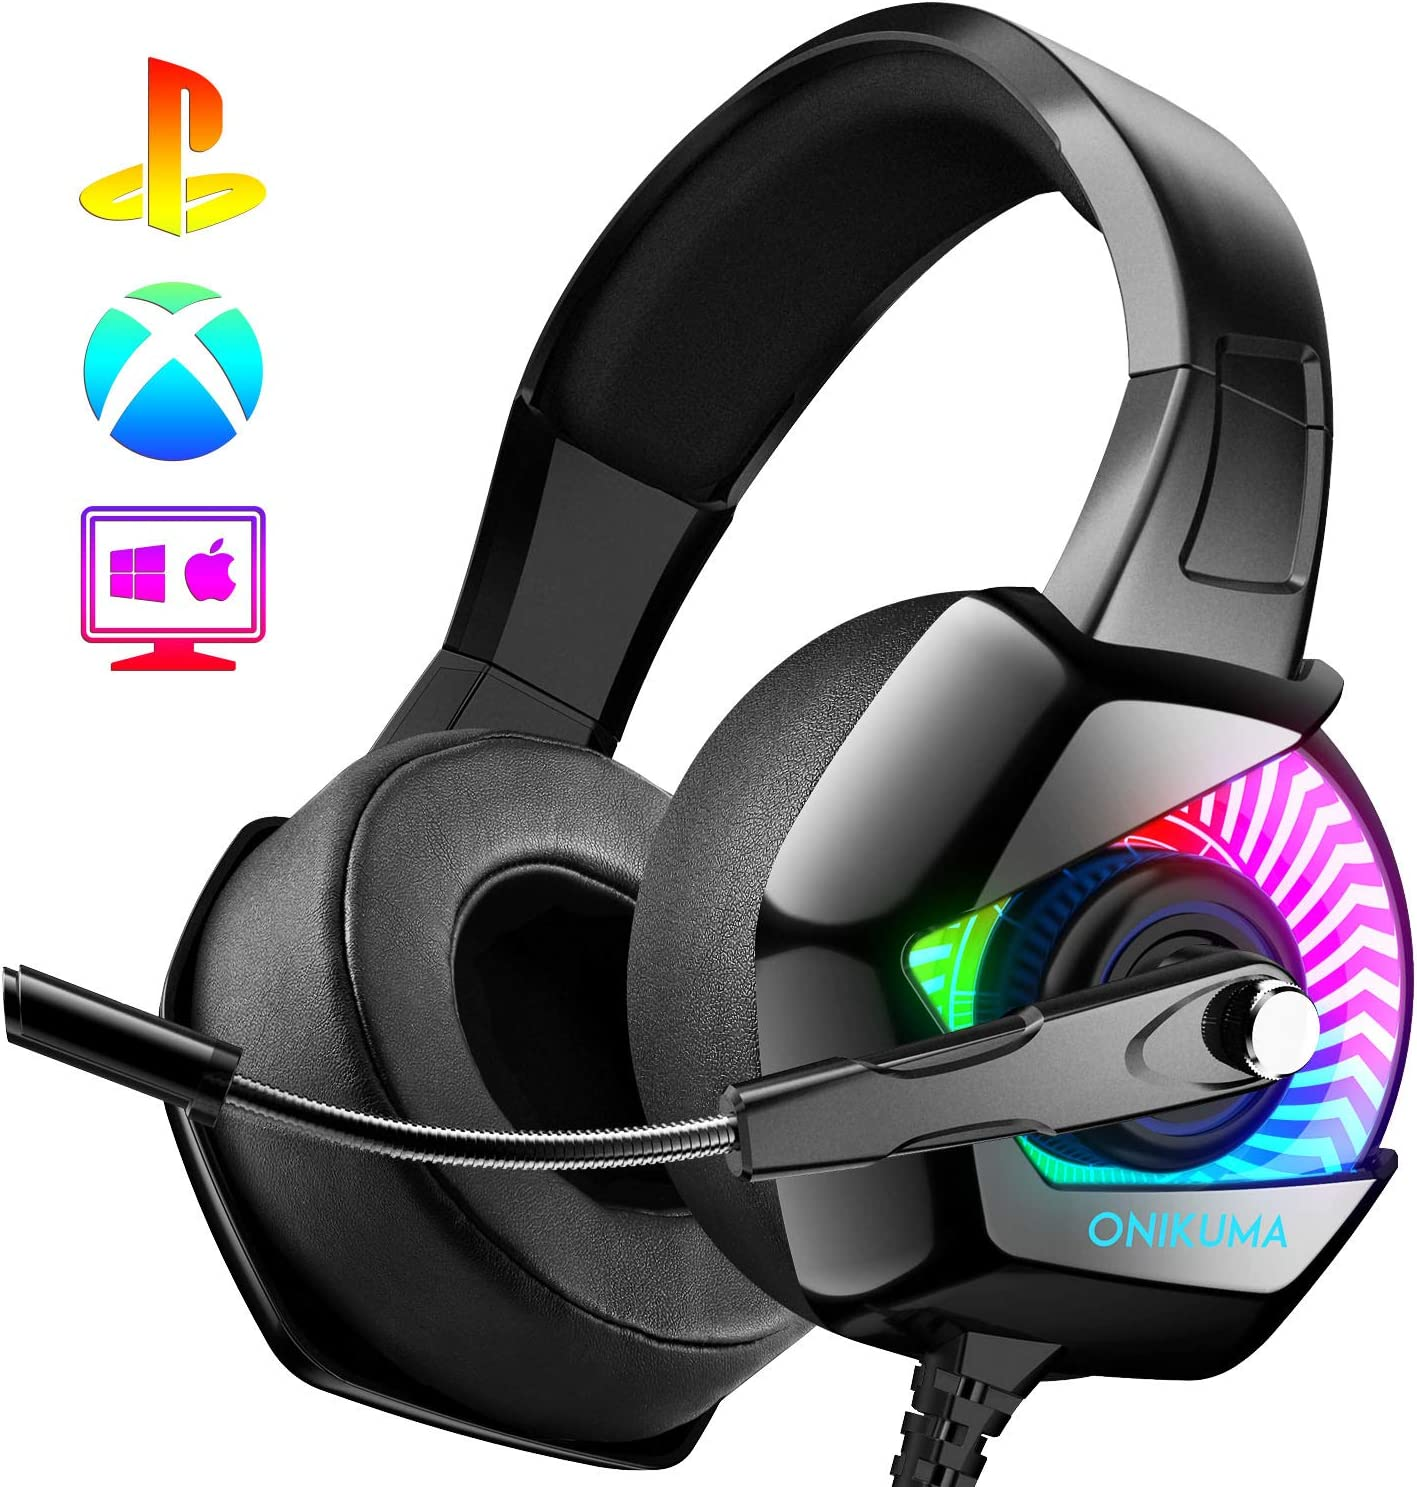 ONIKUMA Gaming Headset PS4 Headset with Mic, 7.1 Surround Sound & Blue Light Xbox One Headset,Gaming headphones PC Headset with Noise Canceling for